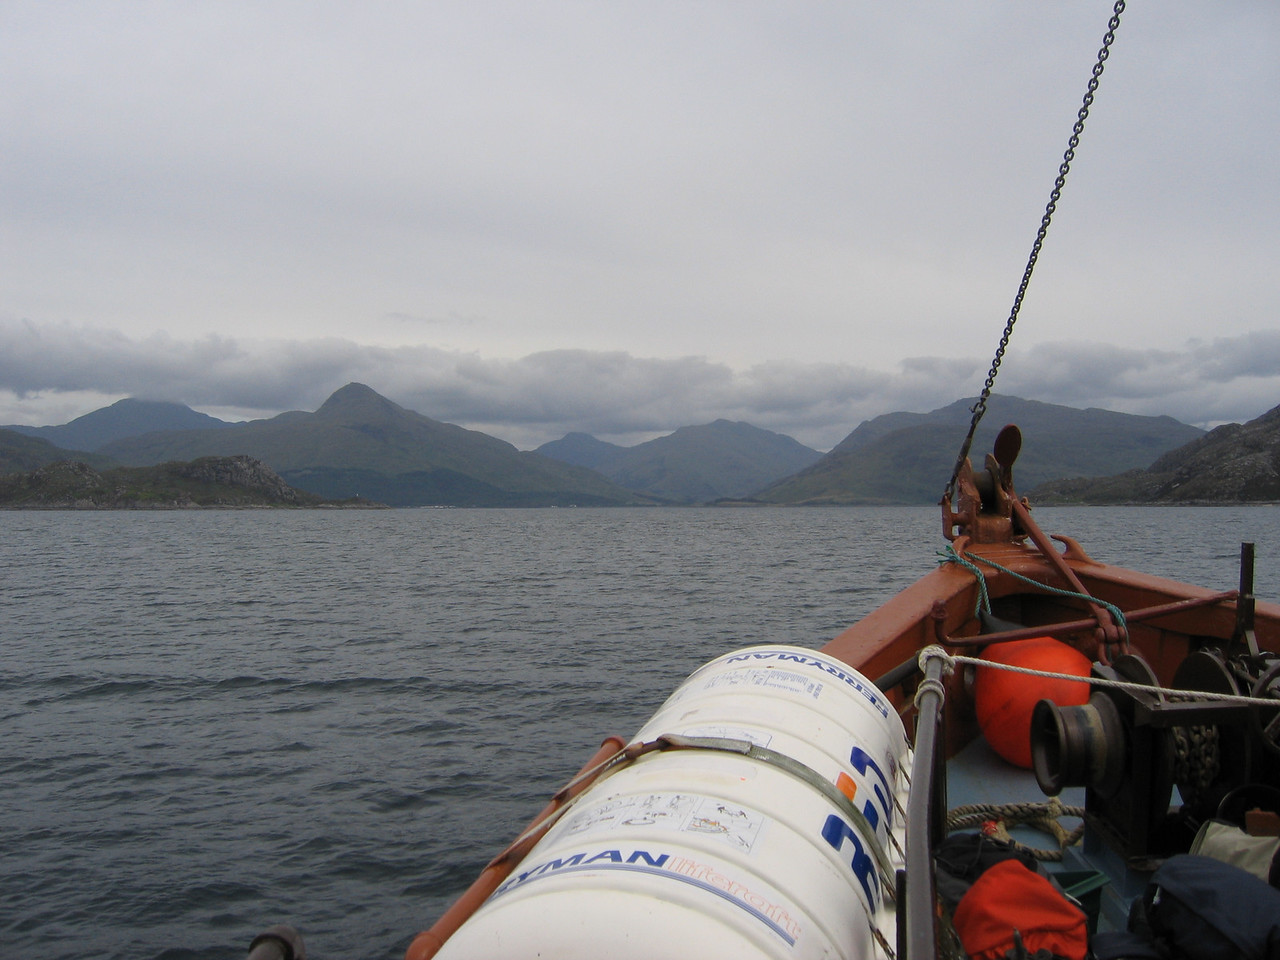 Knoydart Peninsula in the distance